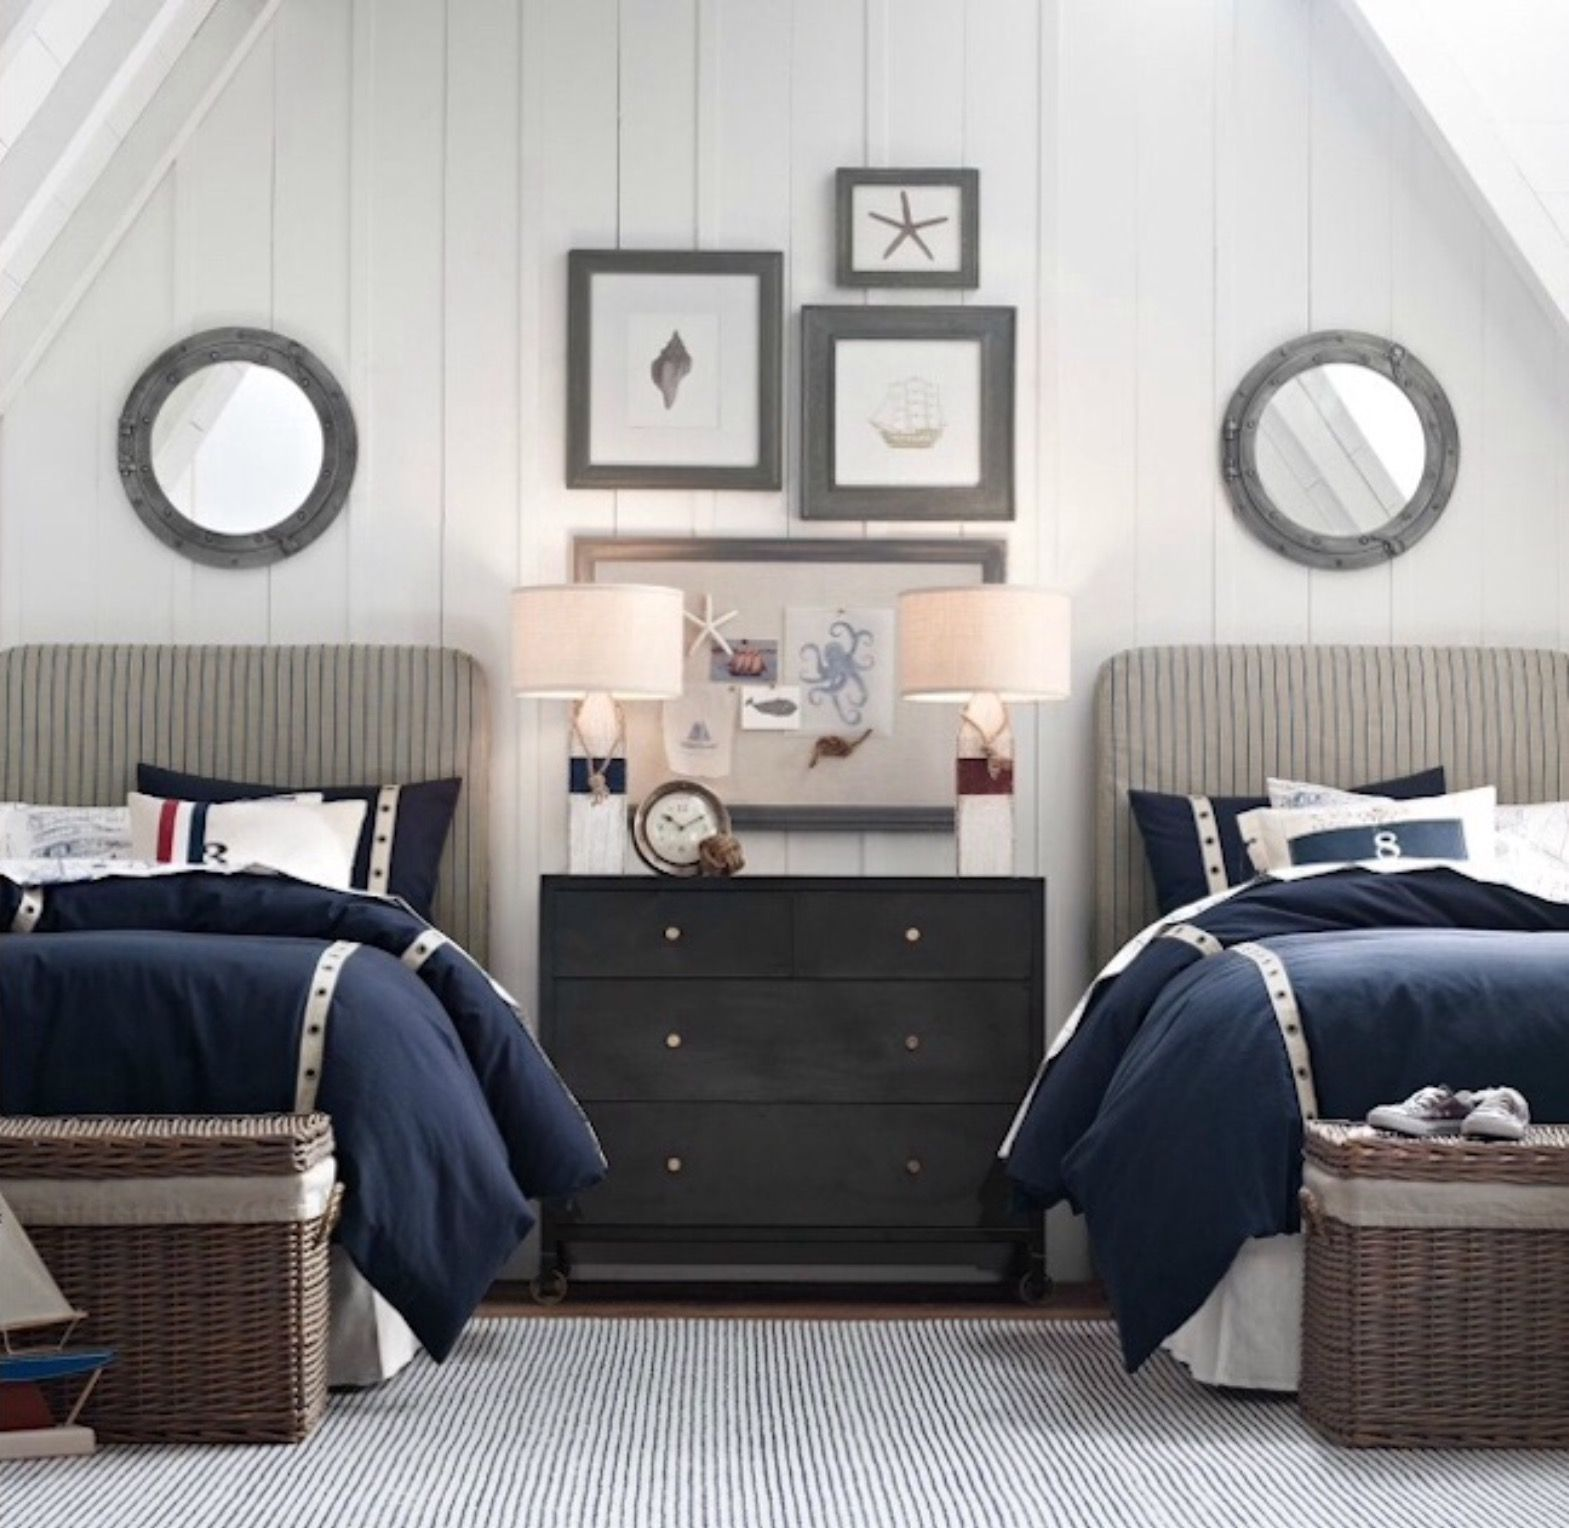 decor ideas wall anchor nursery childrens themes decorating sailboat themed kids room s nautical baby living children size of full theme bedroom